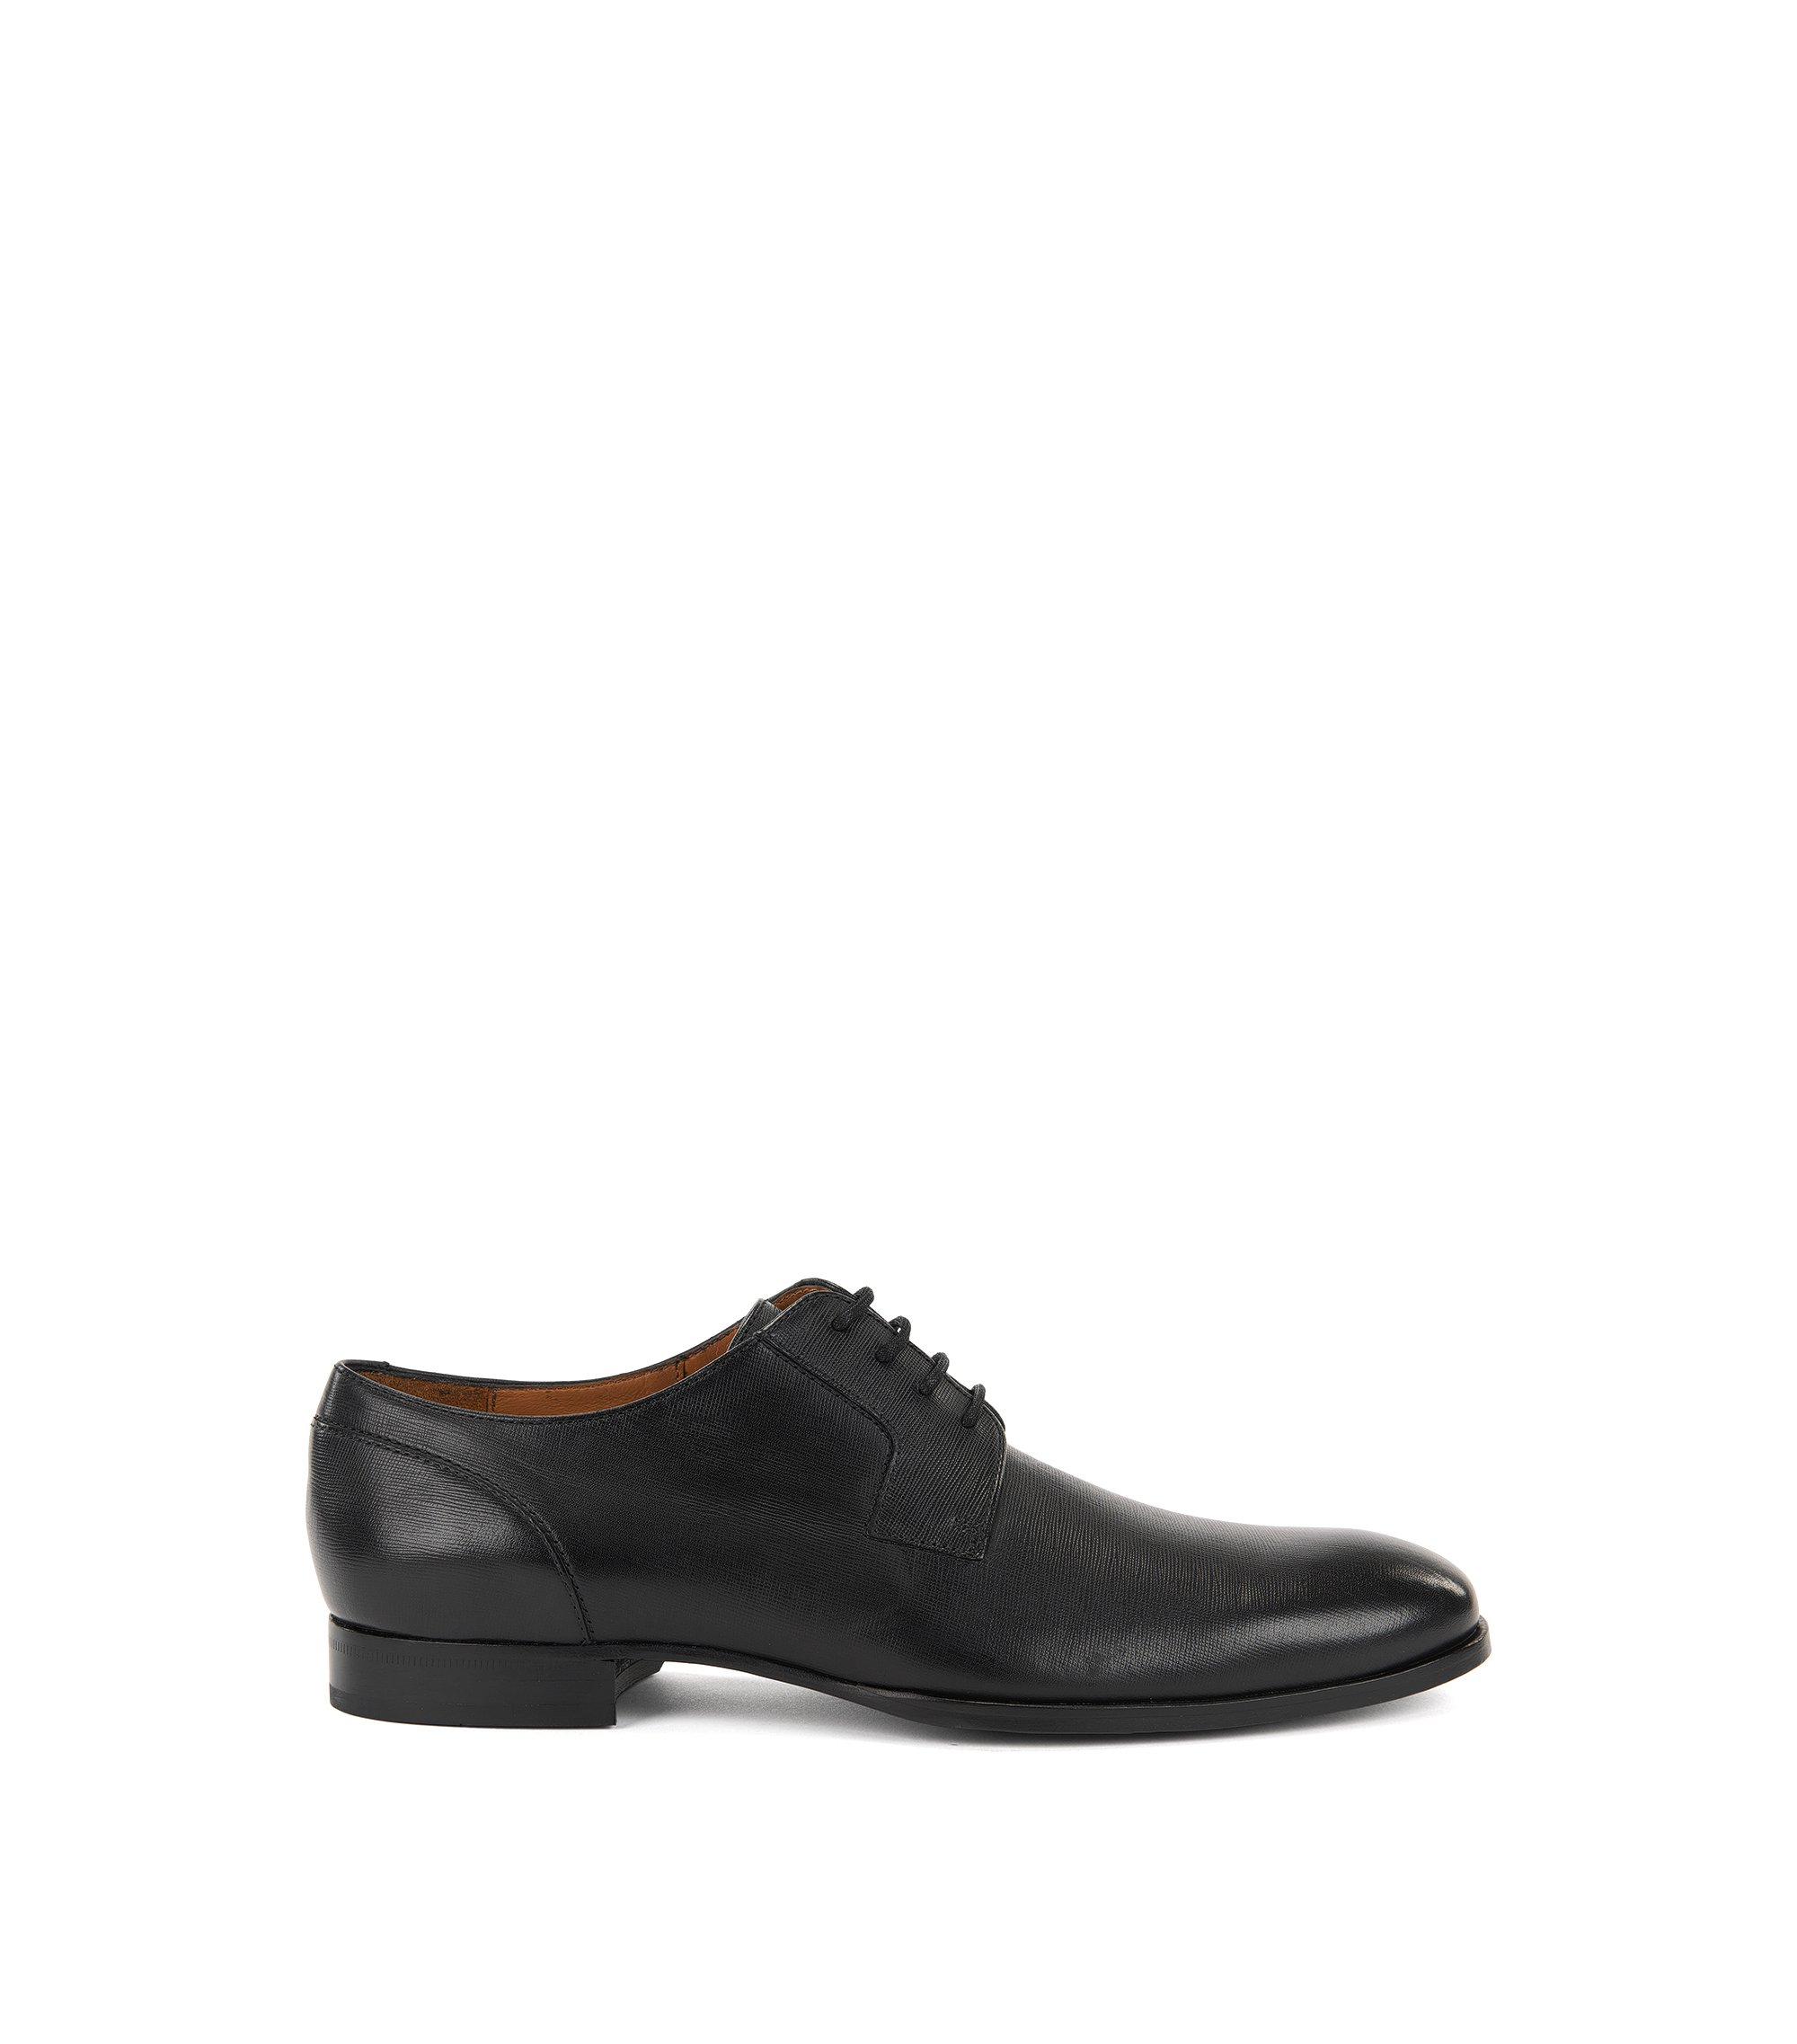 Italian Leather Derby Dress Shoe | Hannover Derb Pr, Black